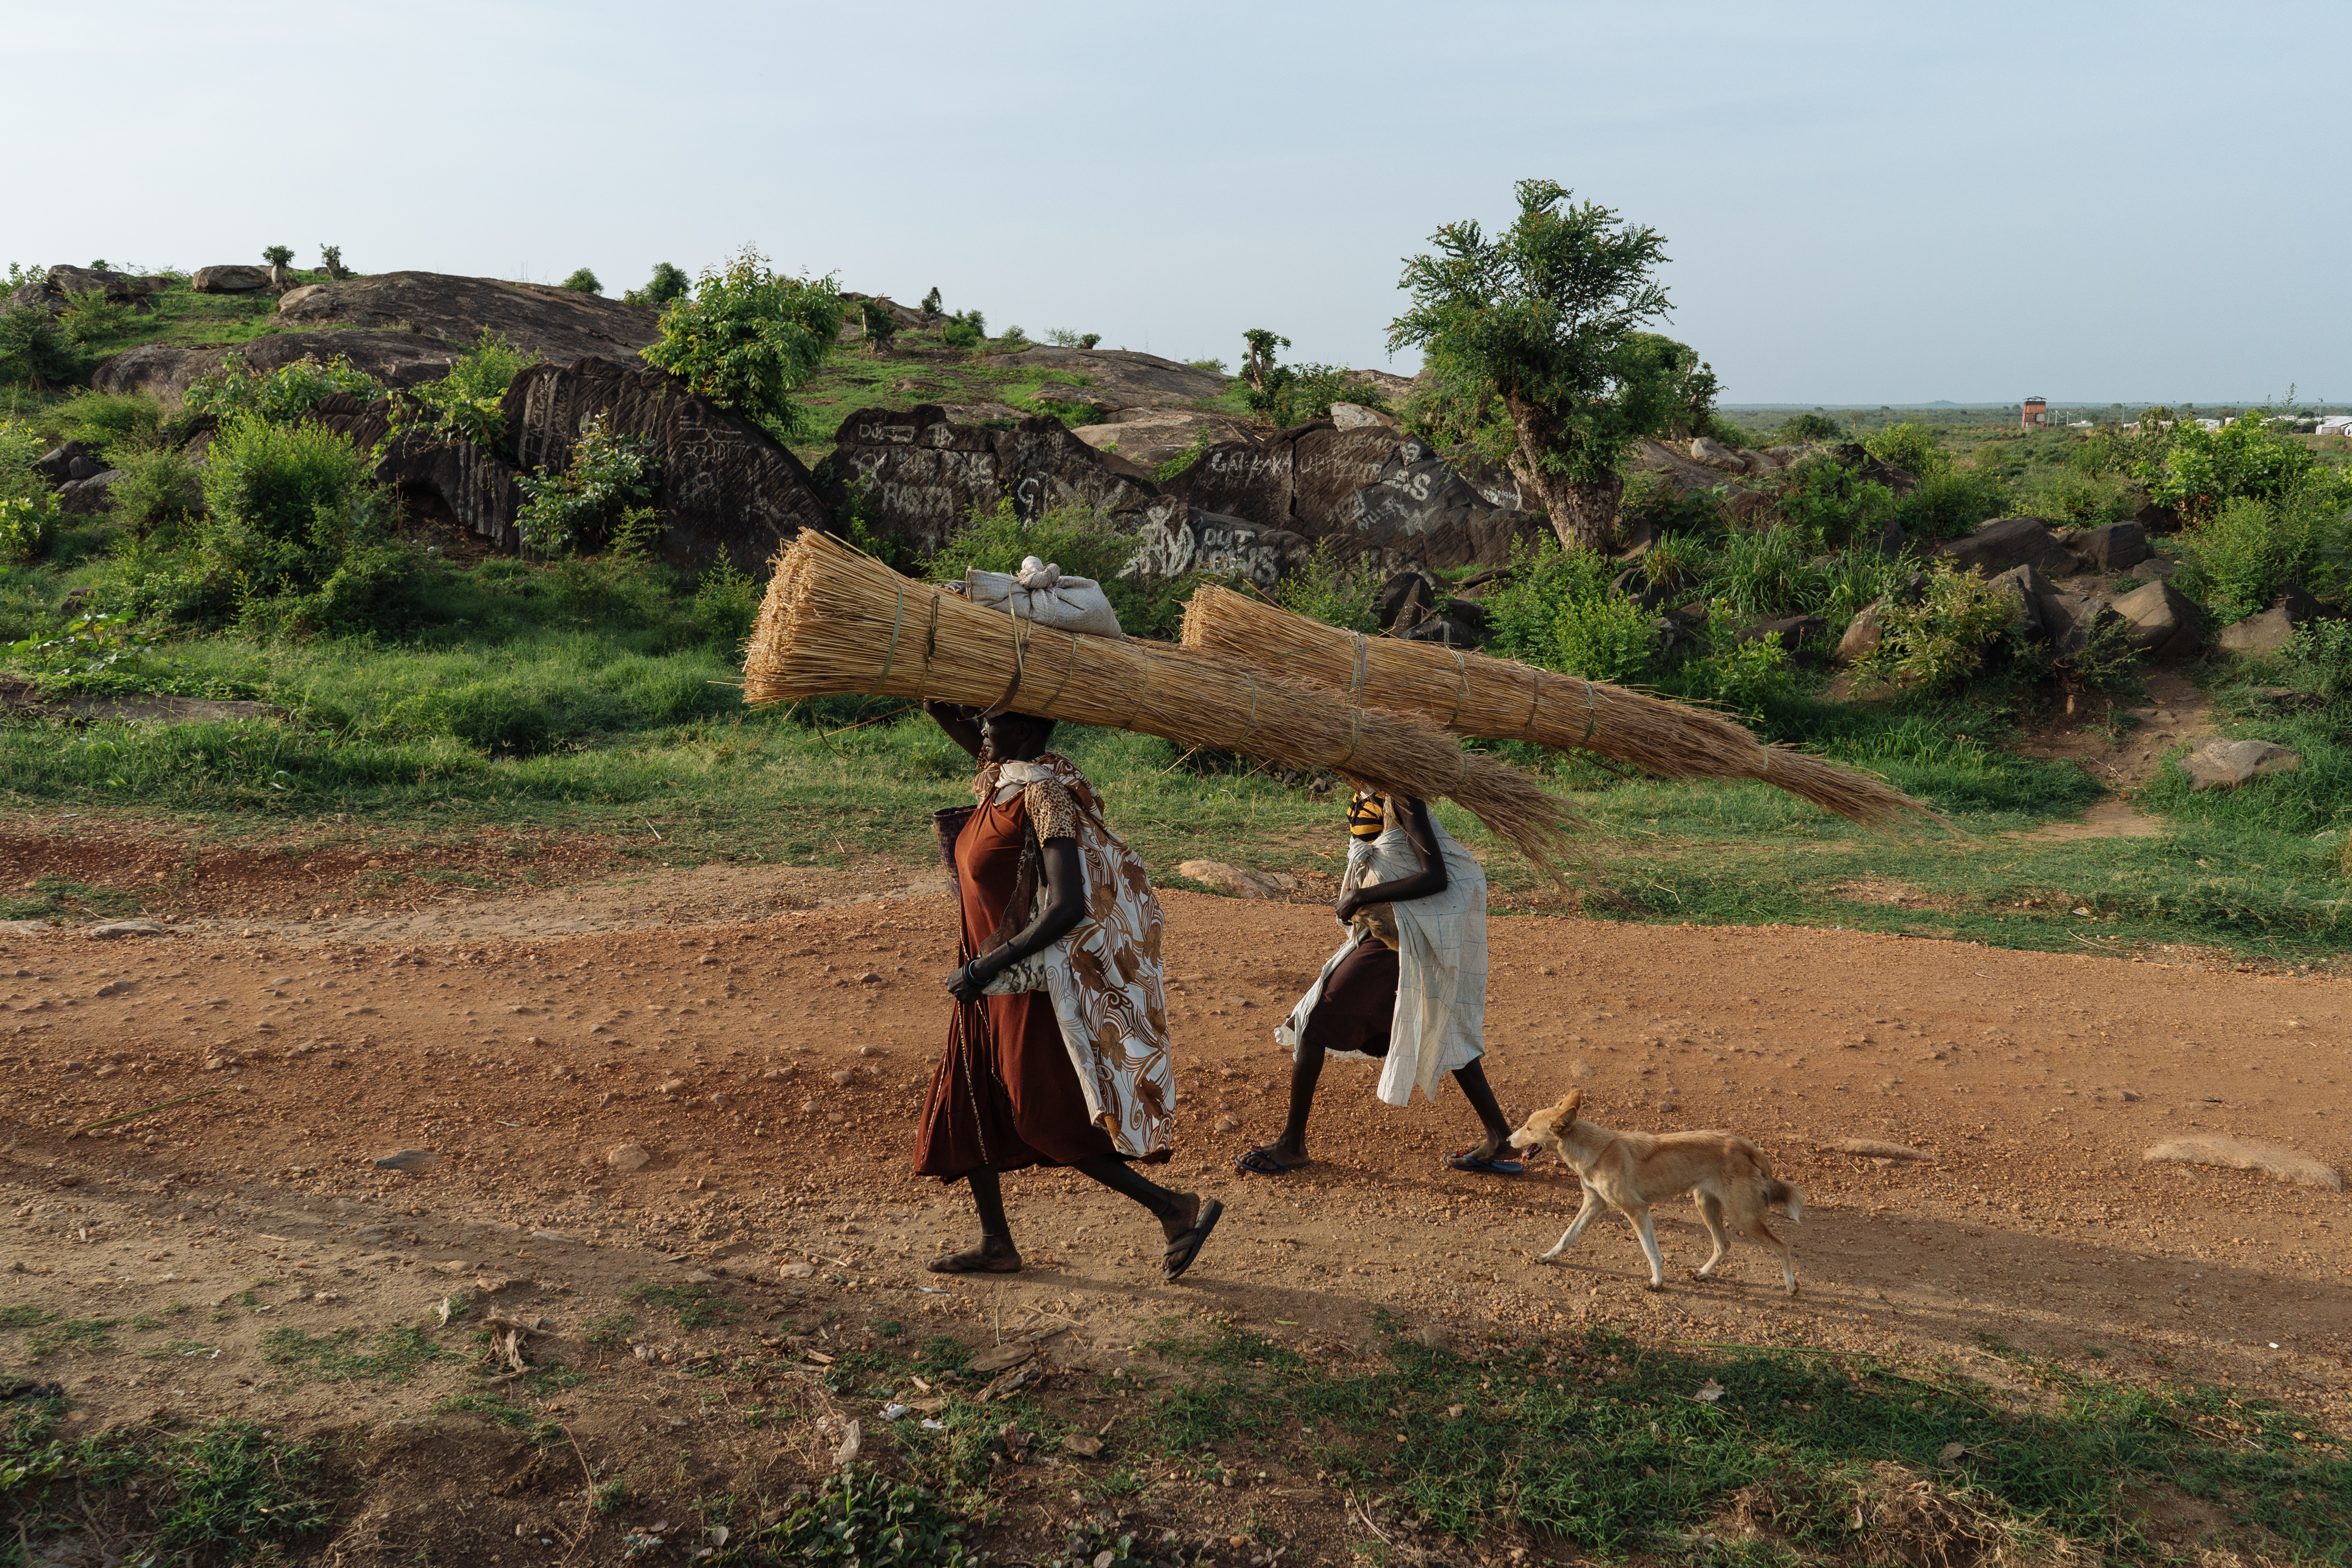 Women return home to the camp after collecting firewood.